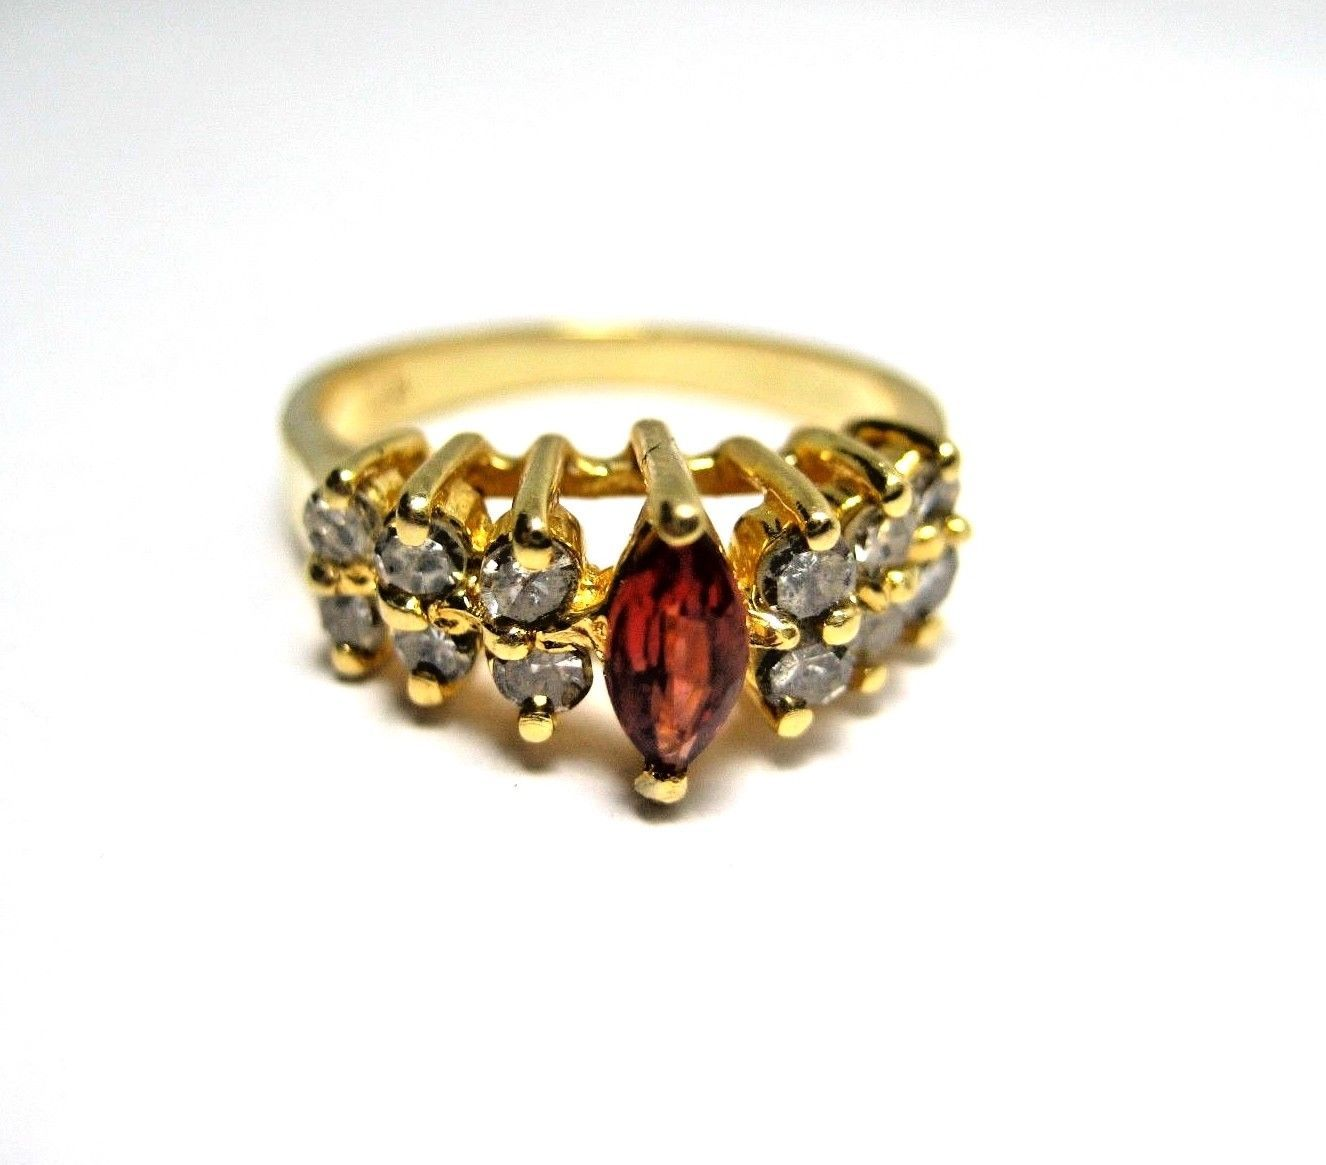 Primary image for Ladies Vintage Ring in 14K Yellow Gold with Marquis Garnet and Diamonds Size 6.5